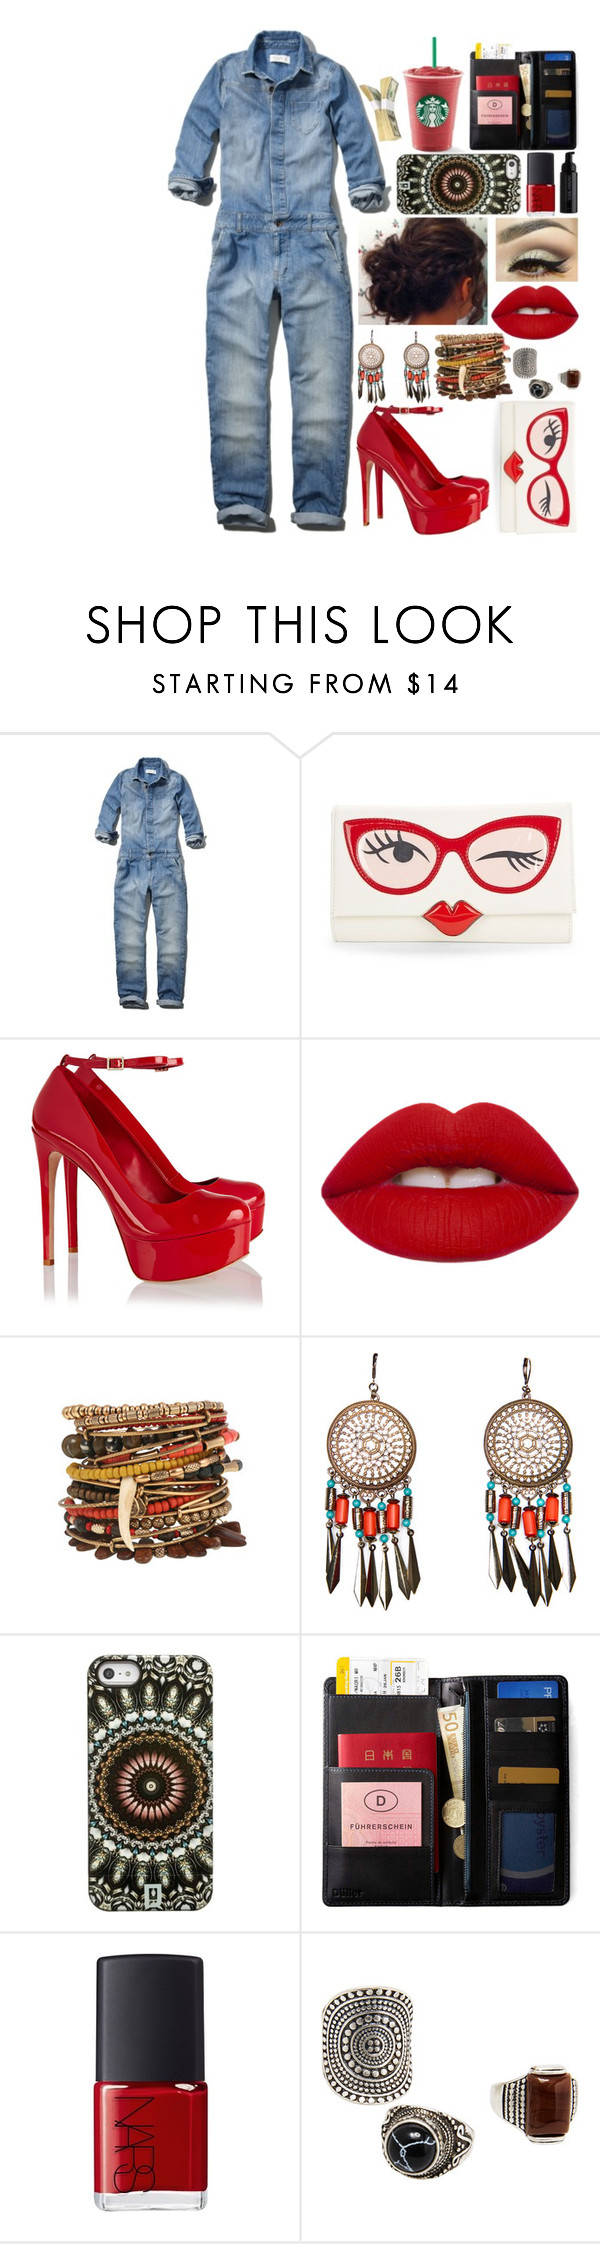 """This"" by chiaral95 ❤ liked on Polyvore featuring Abercrombie & Fitch, Kate Spade, Schutz, MANGO, DANNIJO, IDEA International, NARS Cosmetics and Josie Maran"